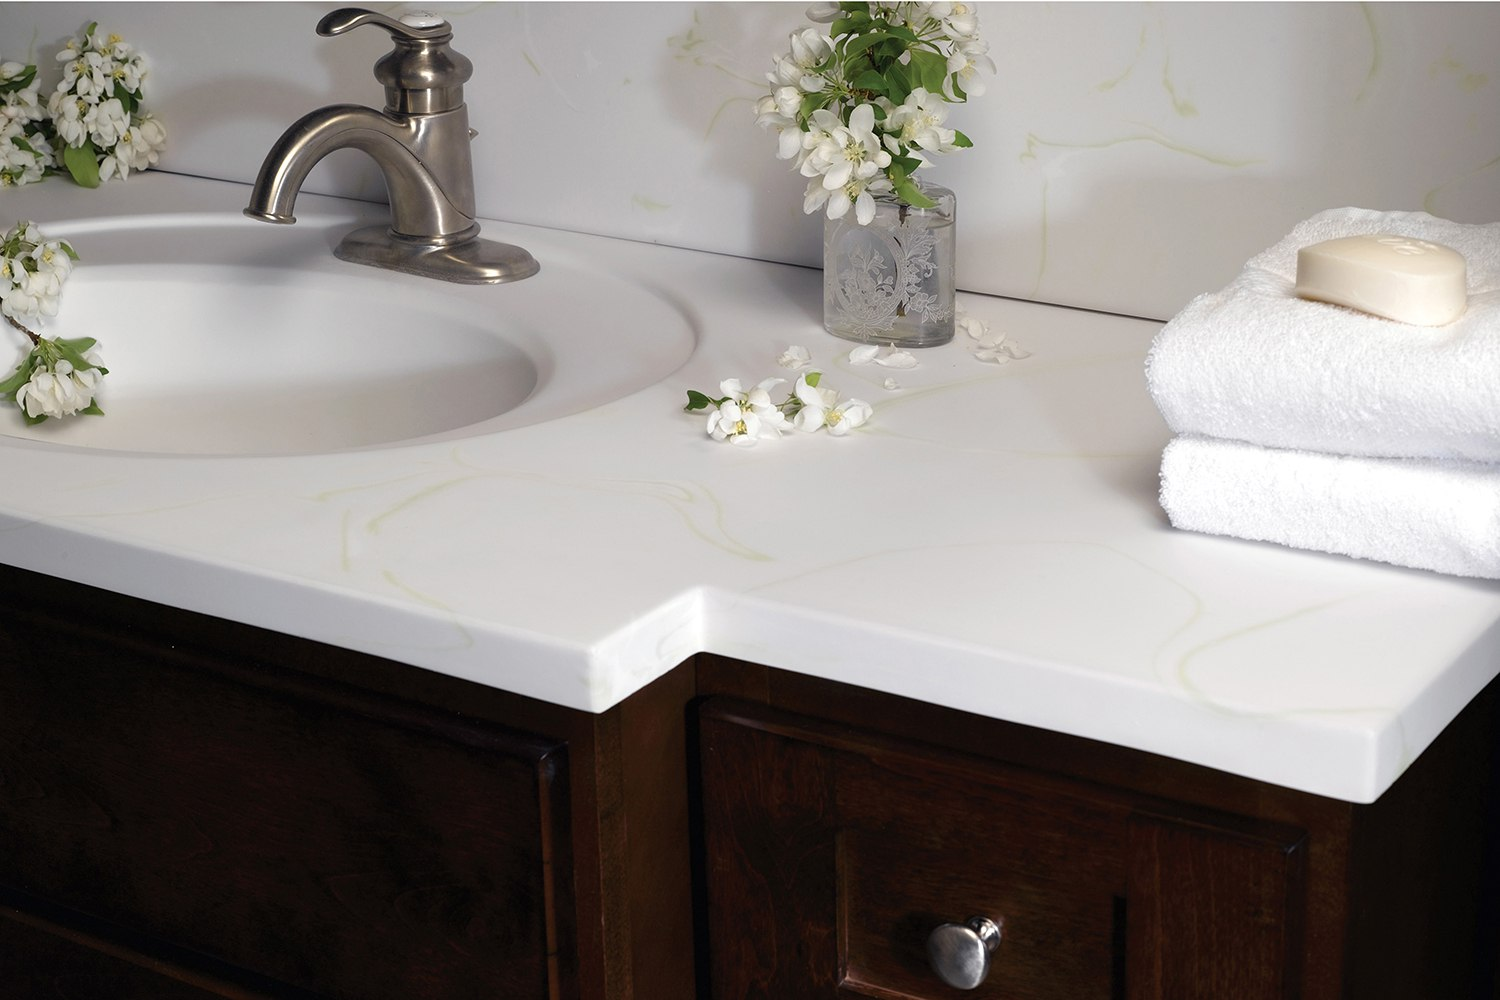 Corian Bathroom Vanity Tops : Bertch bath oasis vanity tops available